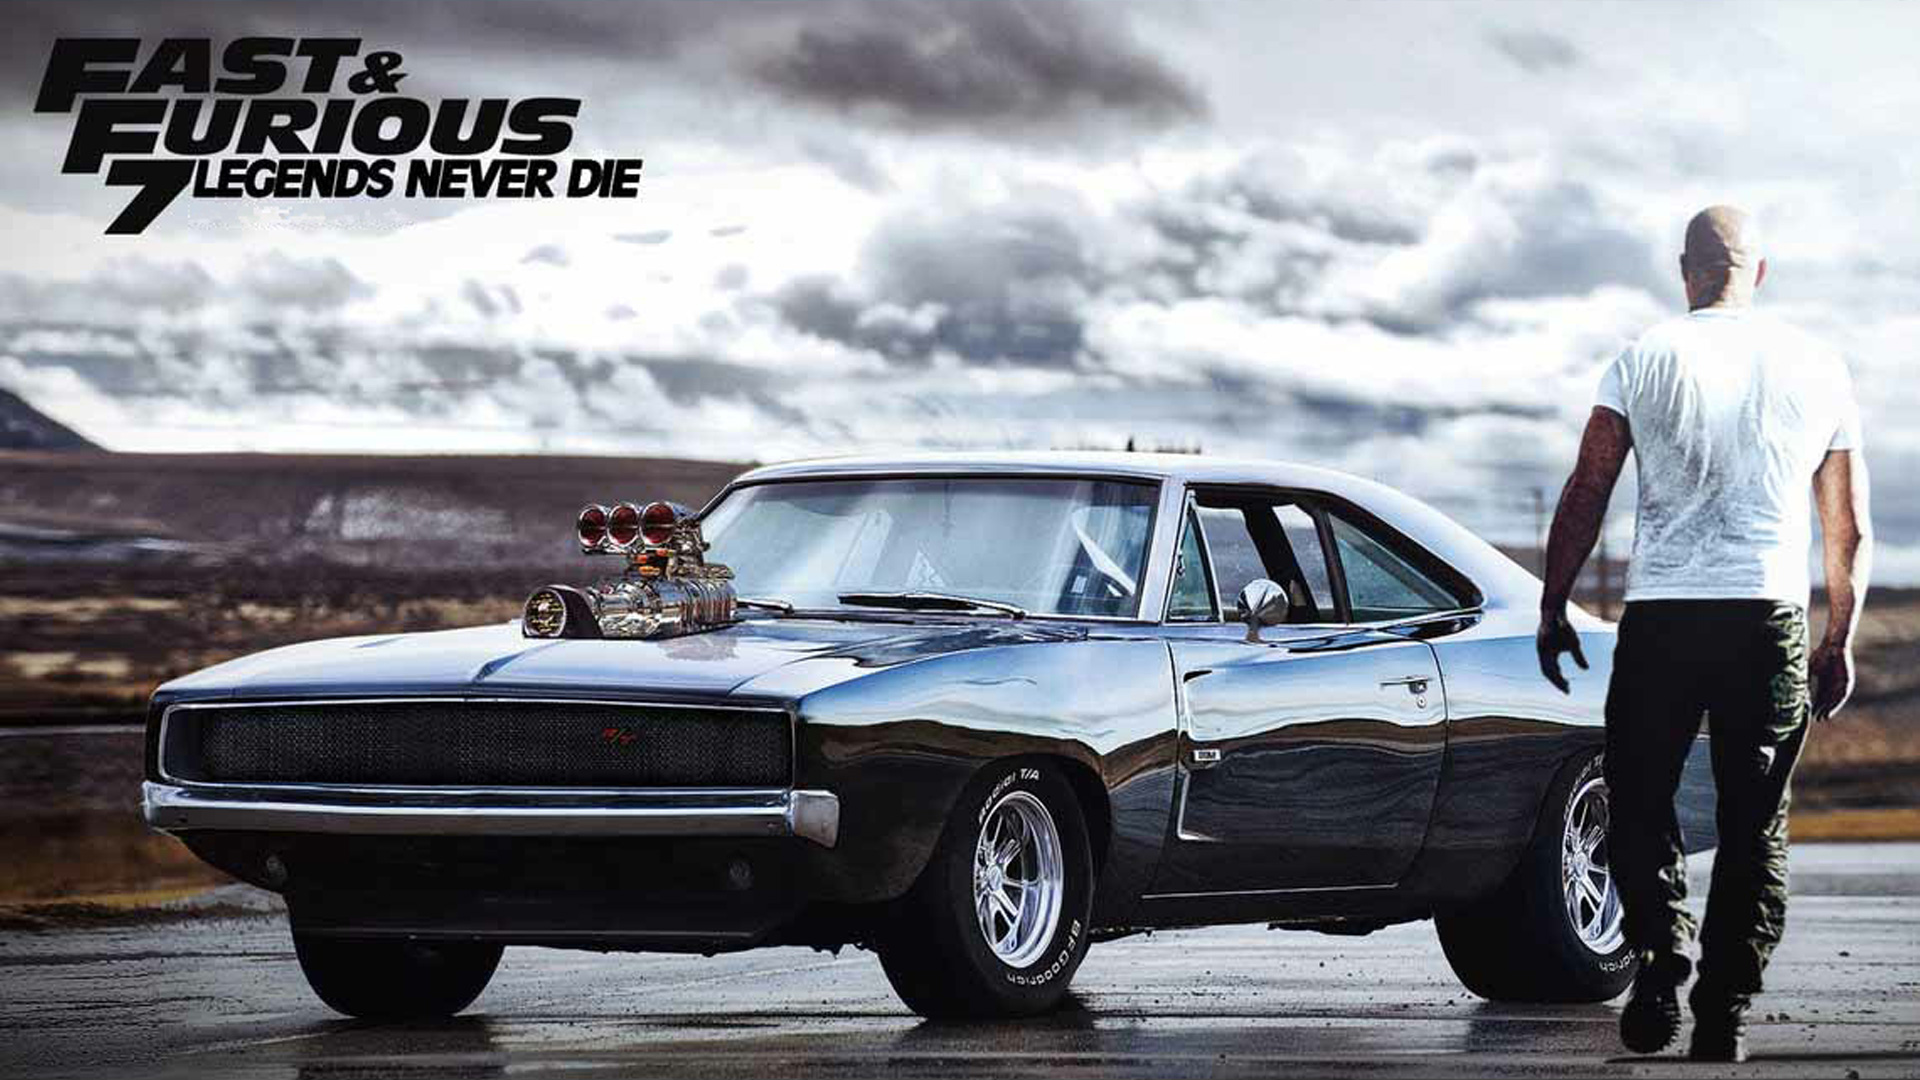 Fast And Furious Backgrounds Download 1920x1080